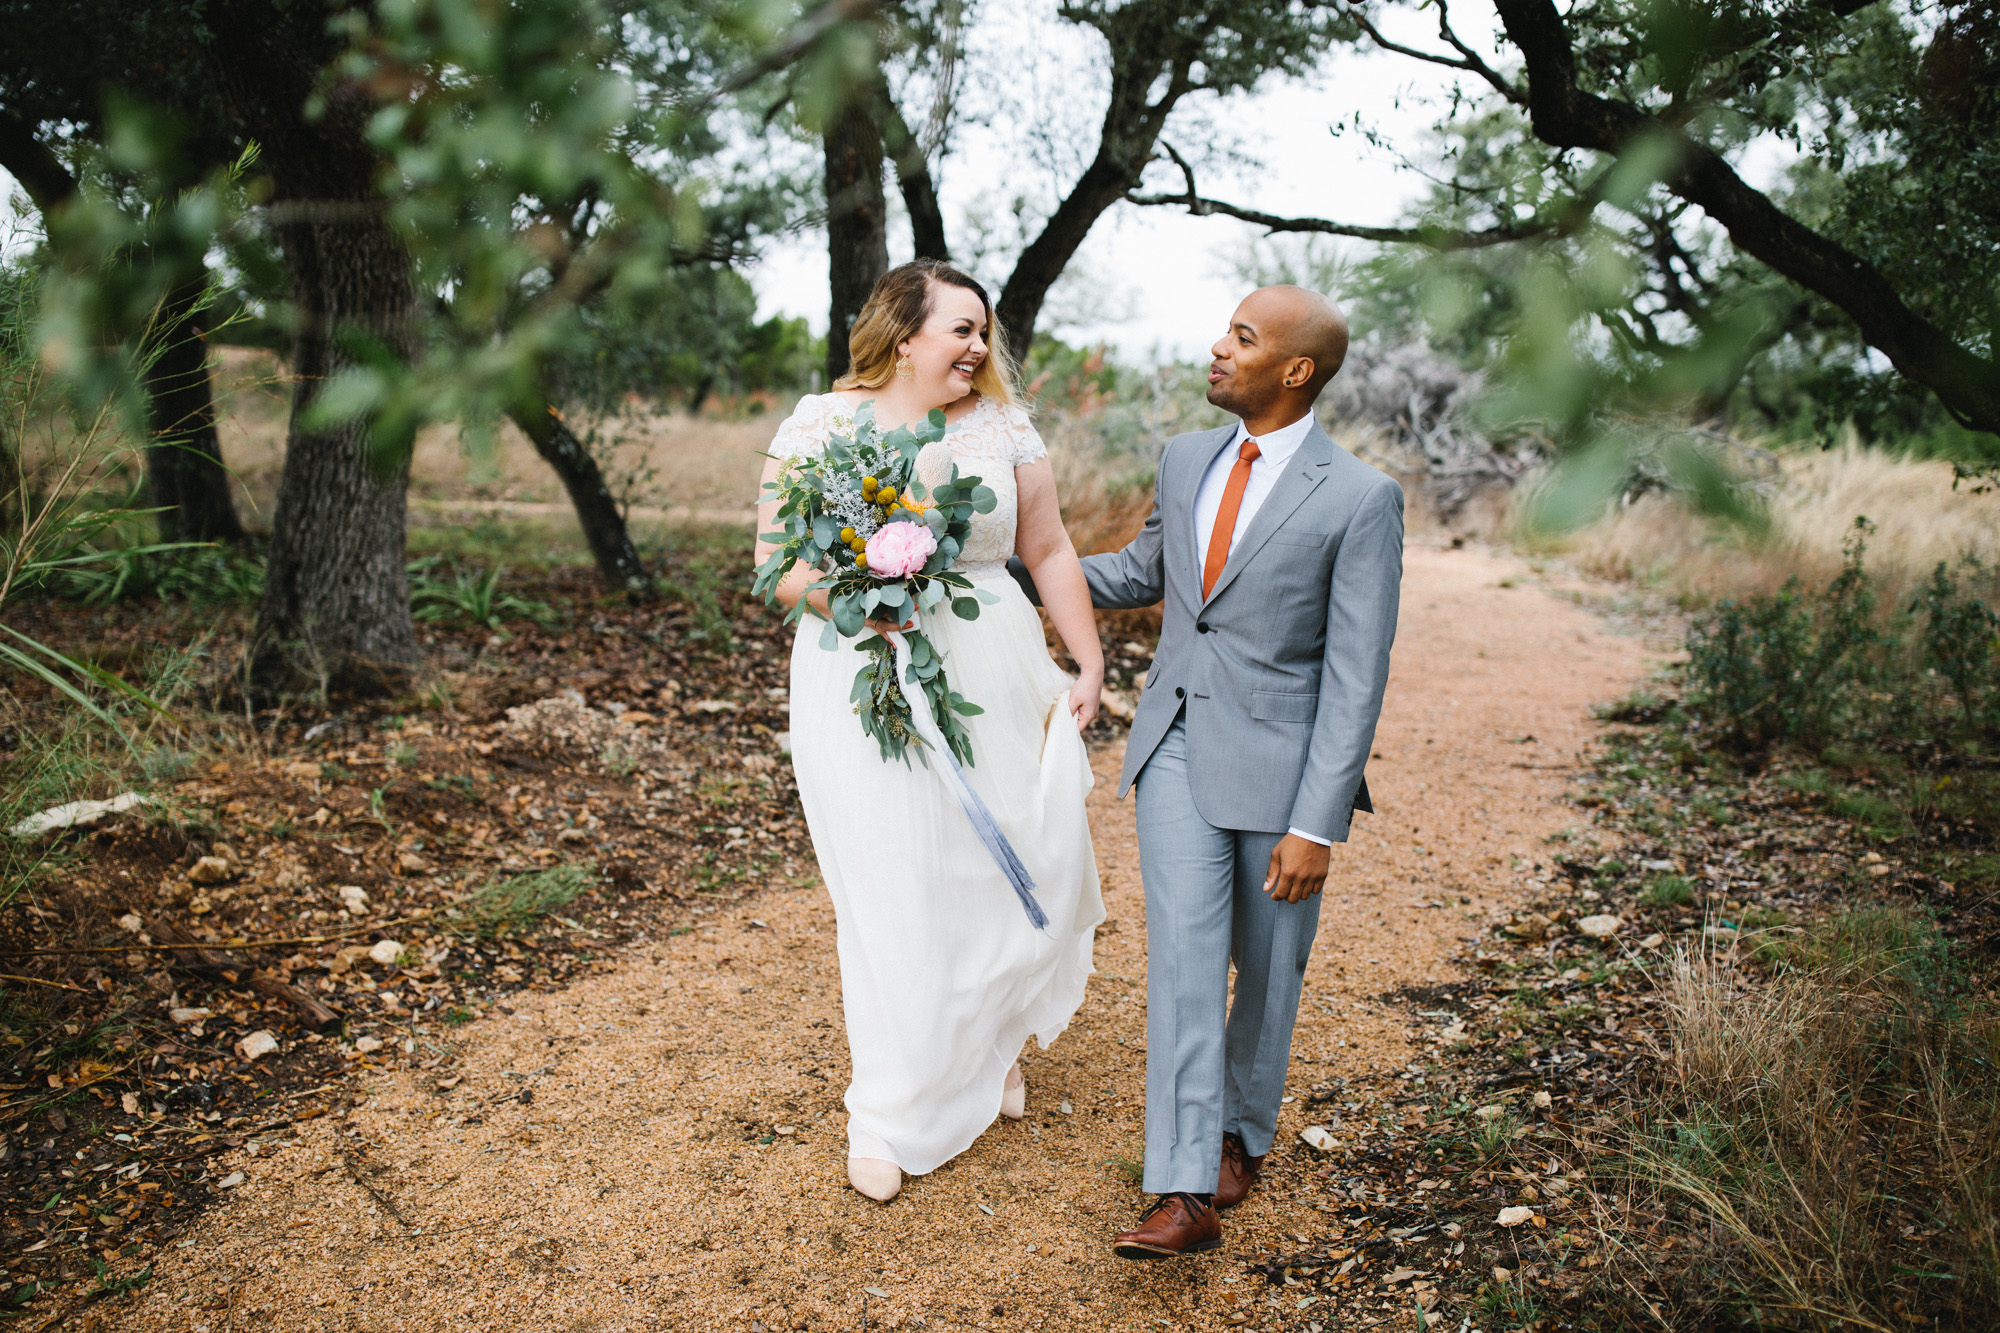 CAM + JENNA |  DRIPPING SPRINGS, TX WEDDING